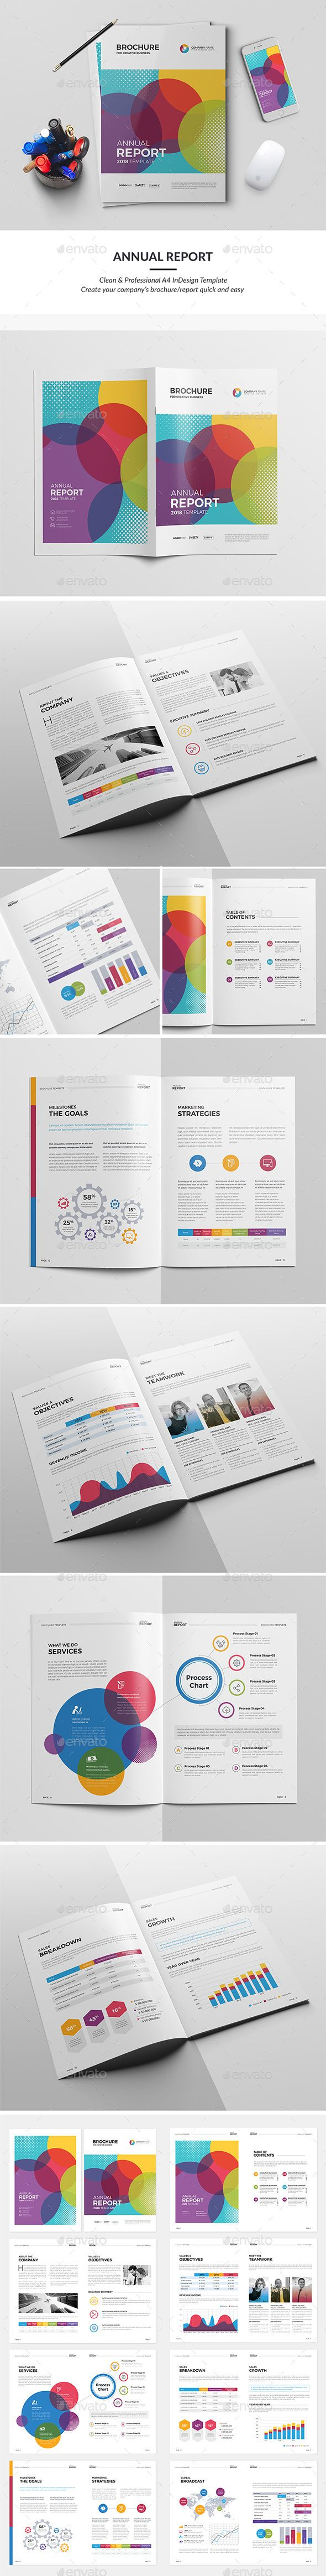 Colorful Annual Report Brochure Template InDesign INDD | Brochure ...